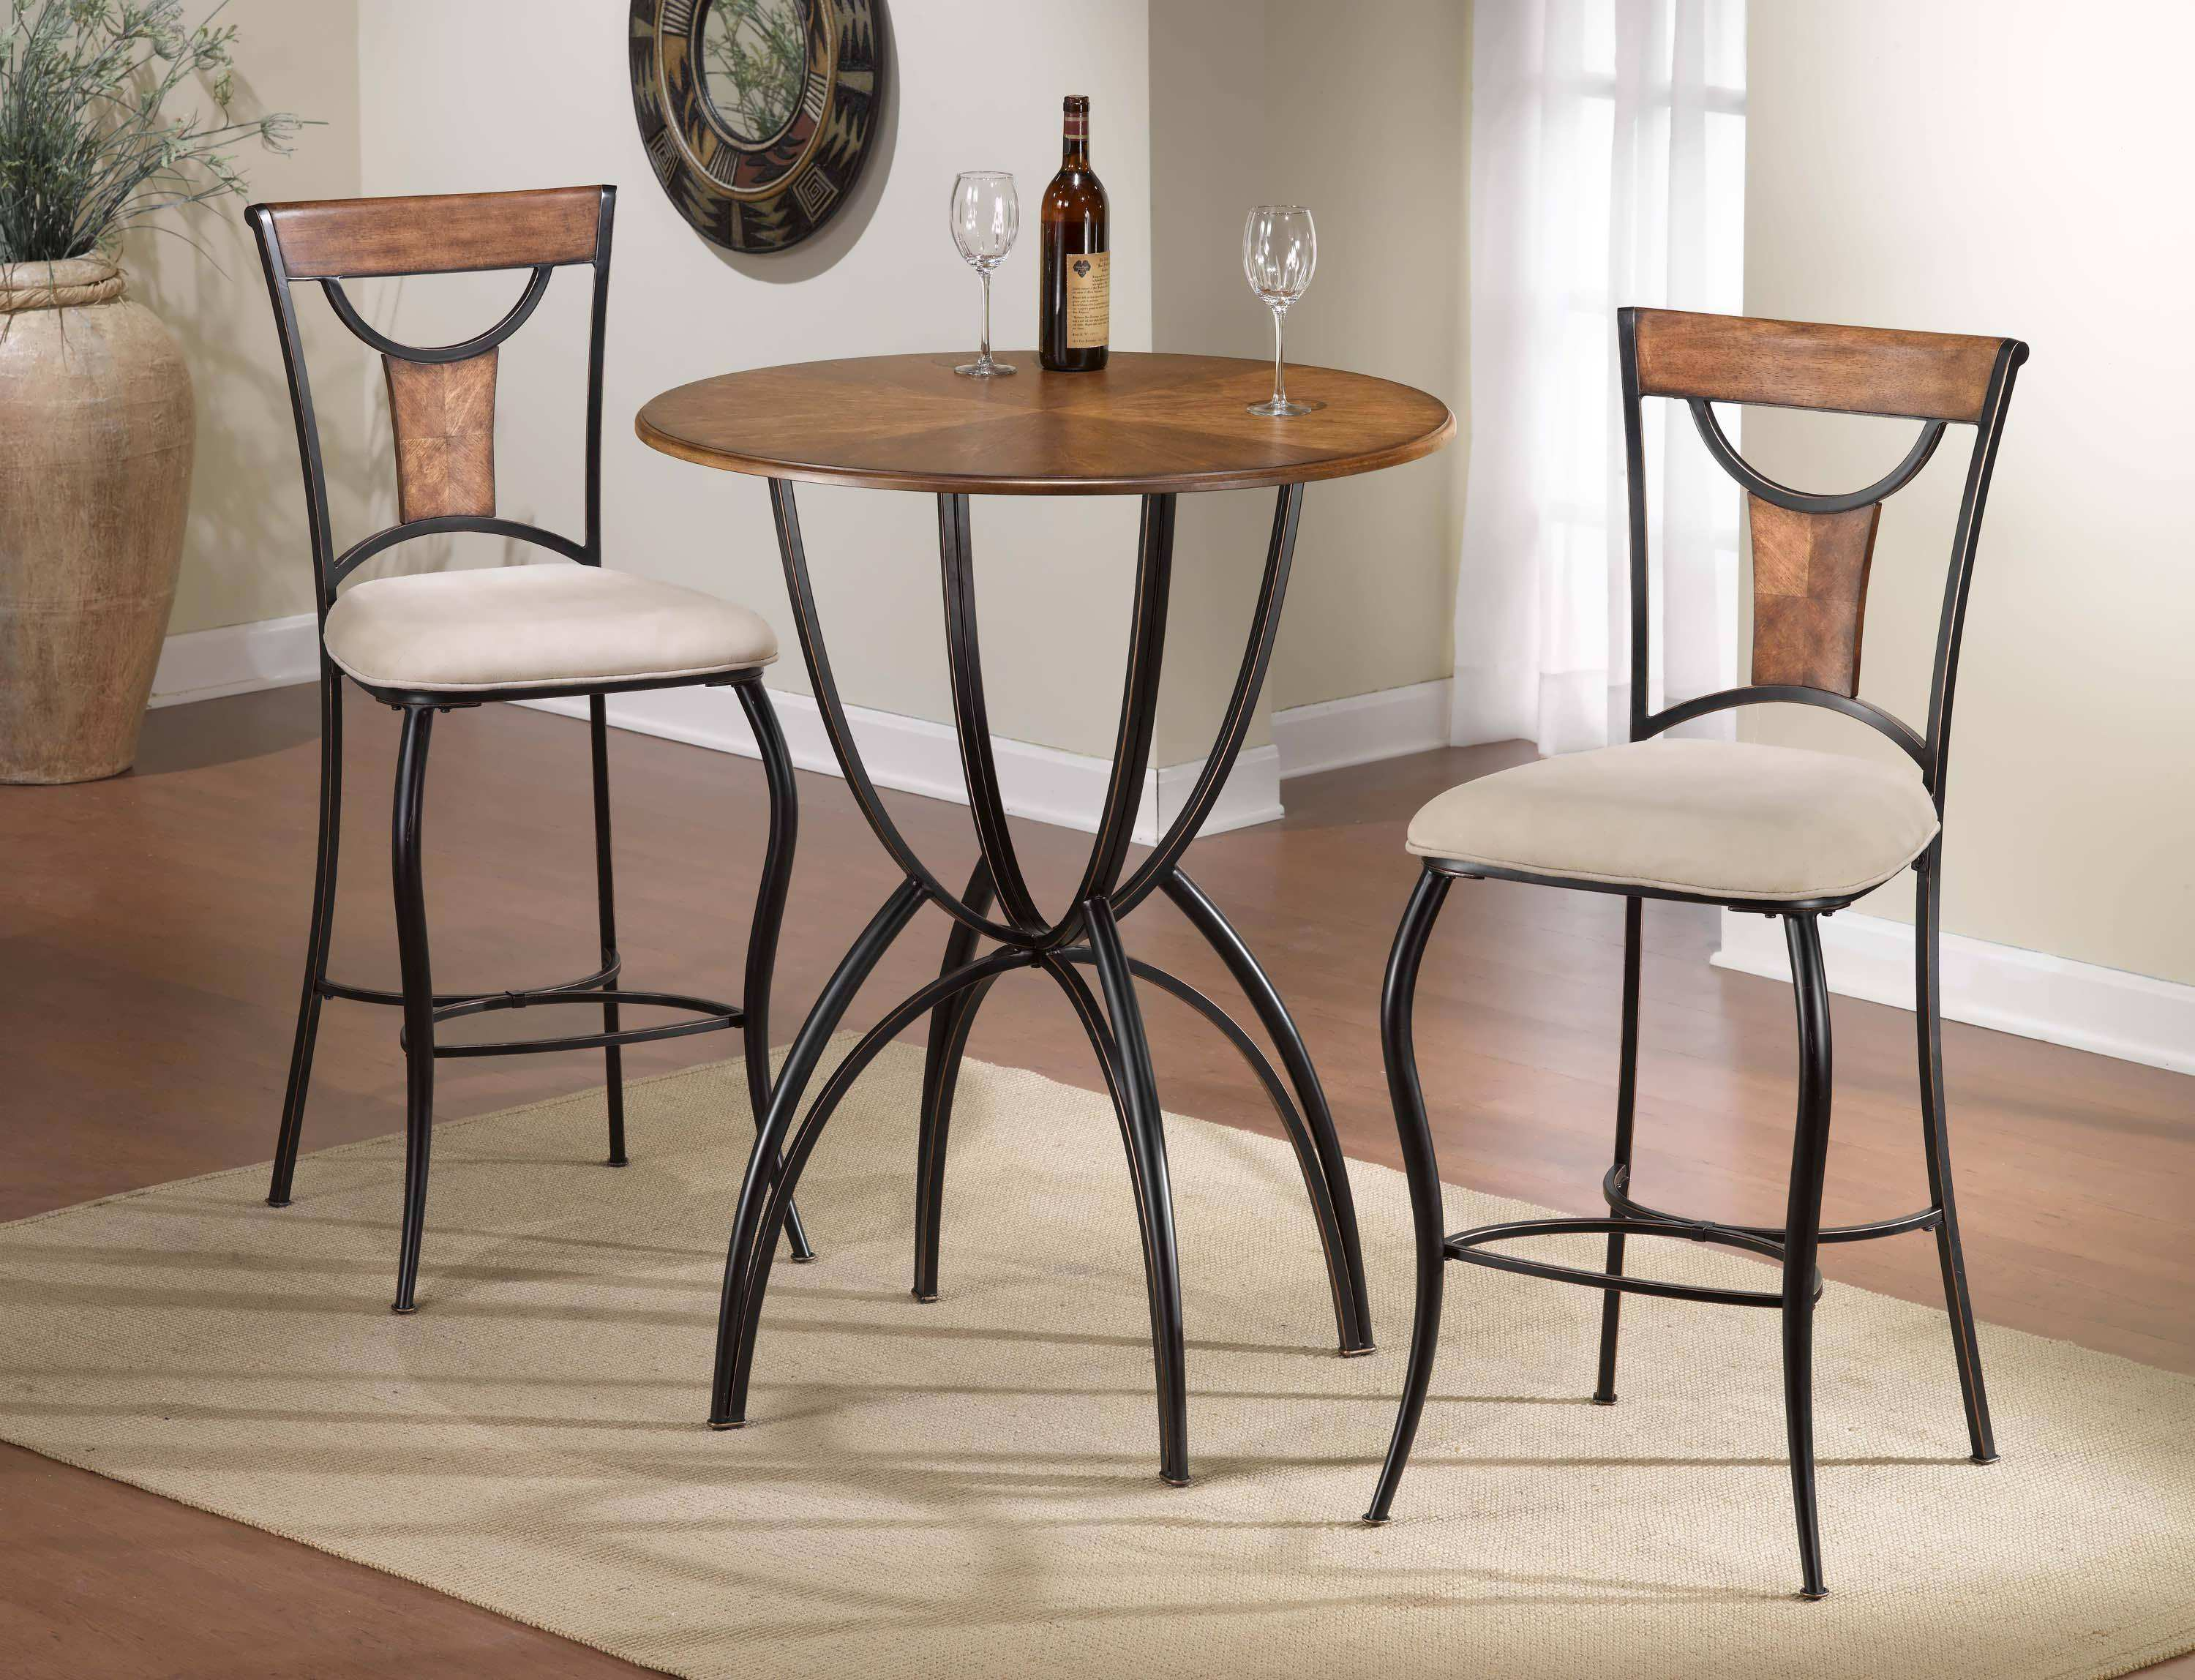 Classy bistro table and chairs for home furniture ideas with indoor bistro table and chairs